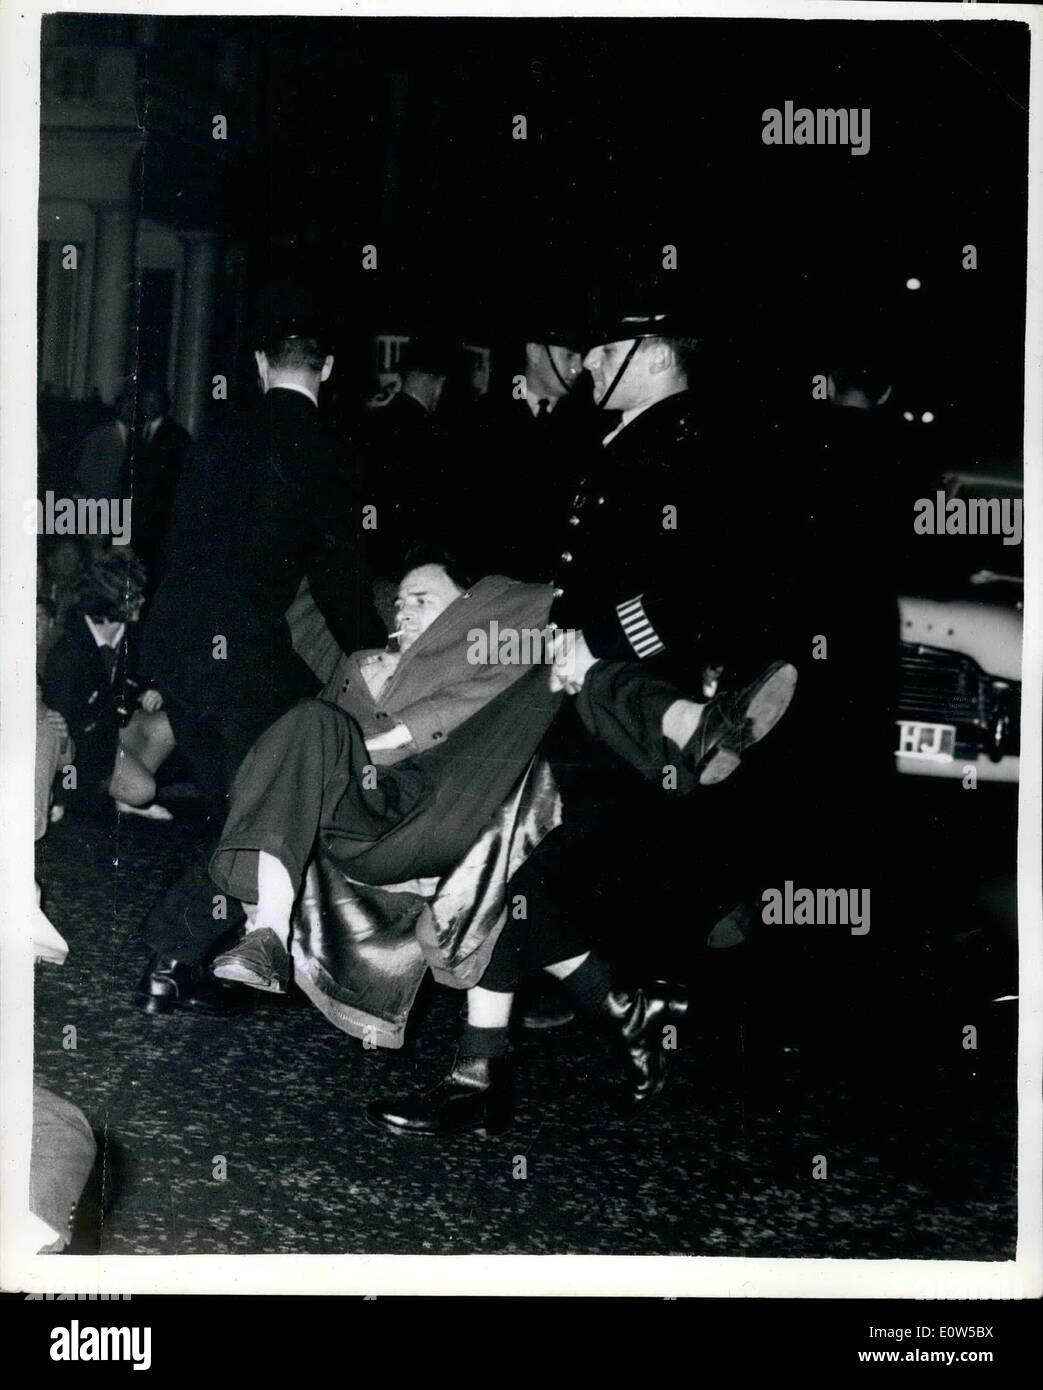 Sep. 09, 1961 - Anti-Bomb Marchers held.. Demonstration in London: Police arrested 120 anti-Bomb demonstrators in the West End of London last night after halting a protest march on the American Embassy... The marchers are supporters of a committee of 100- the group headed by Bertran Russell which is organizing a passive civil disobedience campaign in support of nuclear disarmament. They will appear at Marlborugh street this morning. Picture Shows: Police removing some of the demonstrators- in the West End of London last night.. 120 will appear in court today. - Stock Image